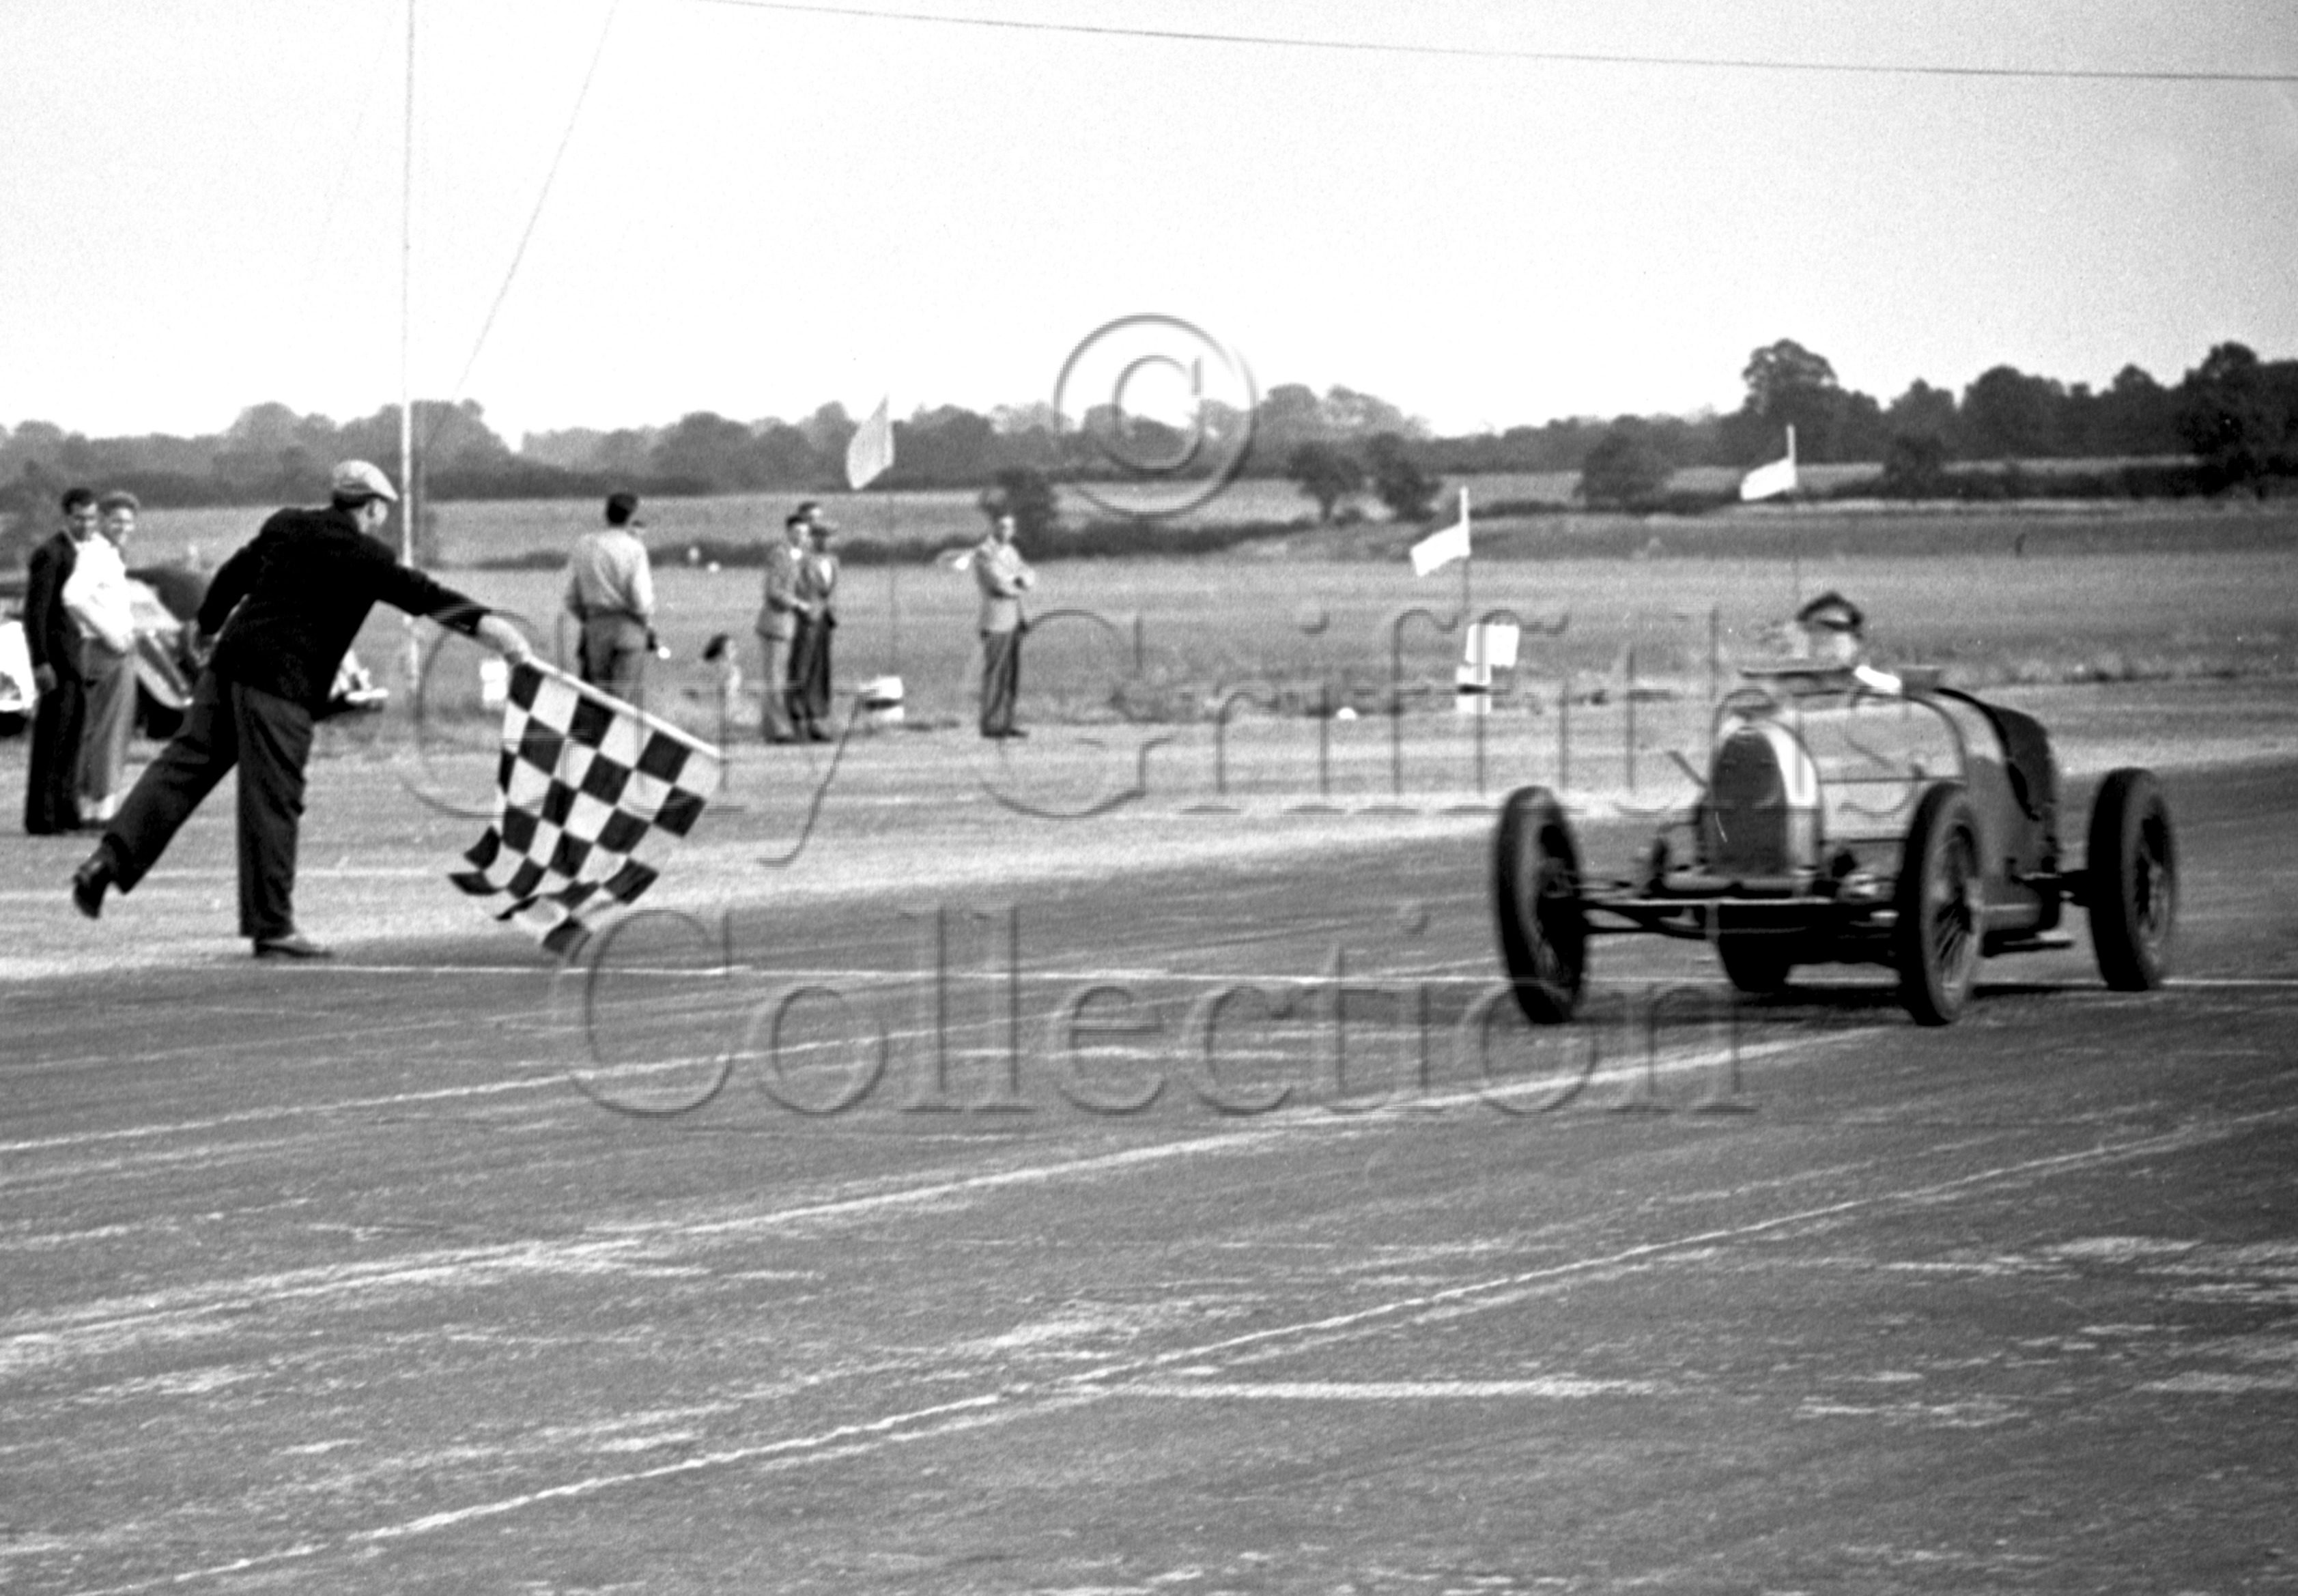 47-895–J-Ching–Bugatti–Silverstone–28-07-1951.jpg - The Guy Griffiths Collection